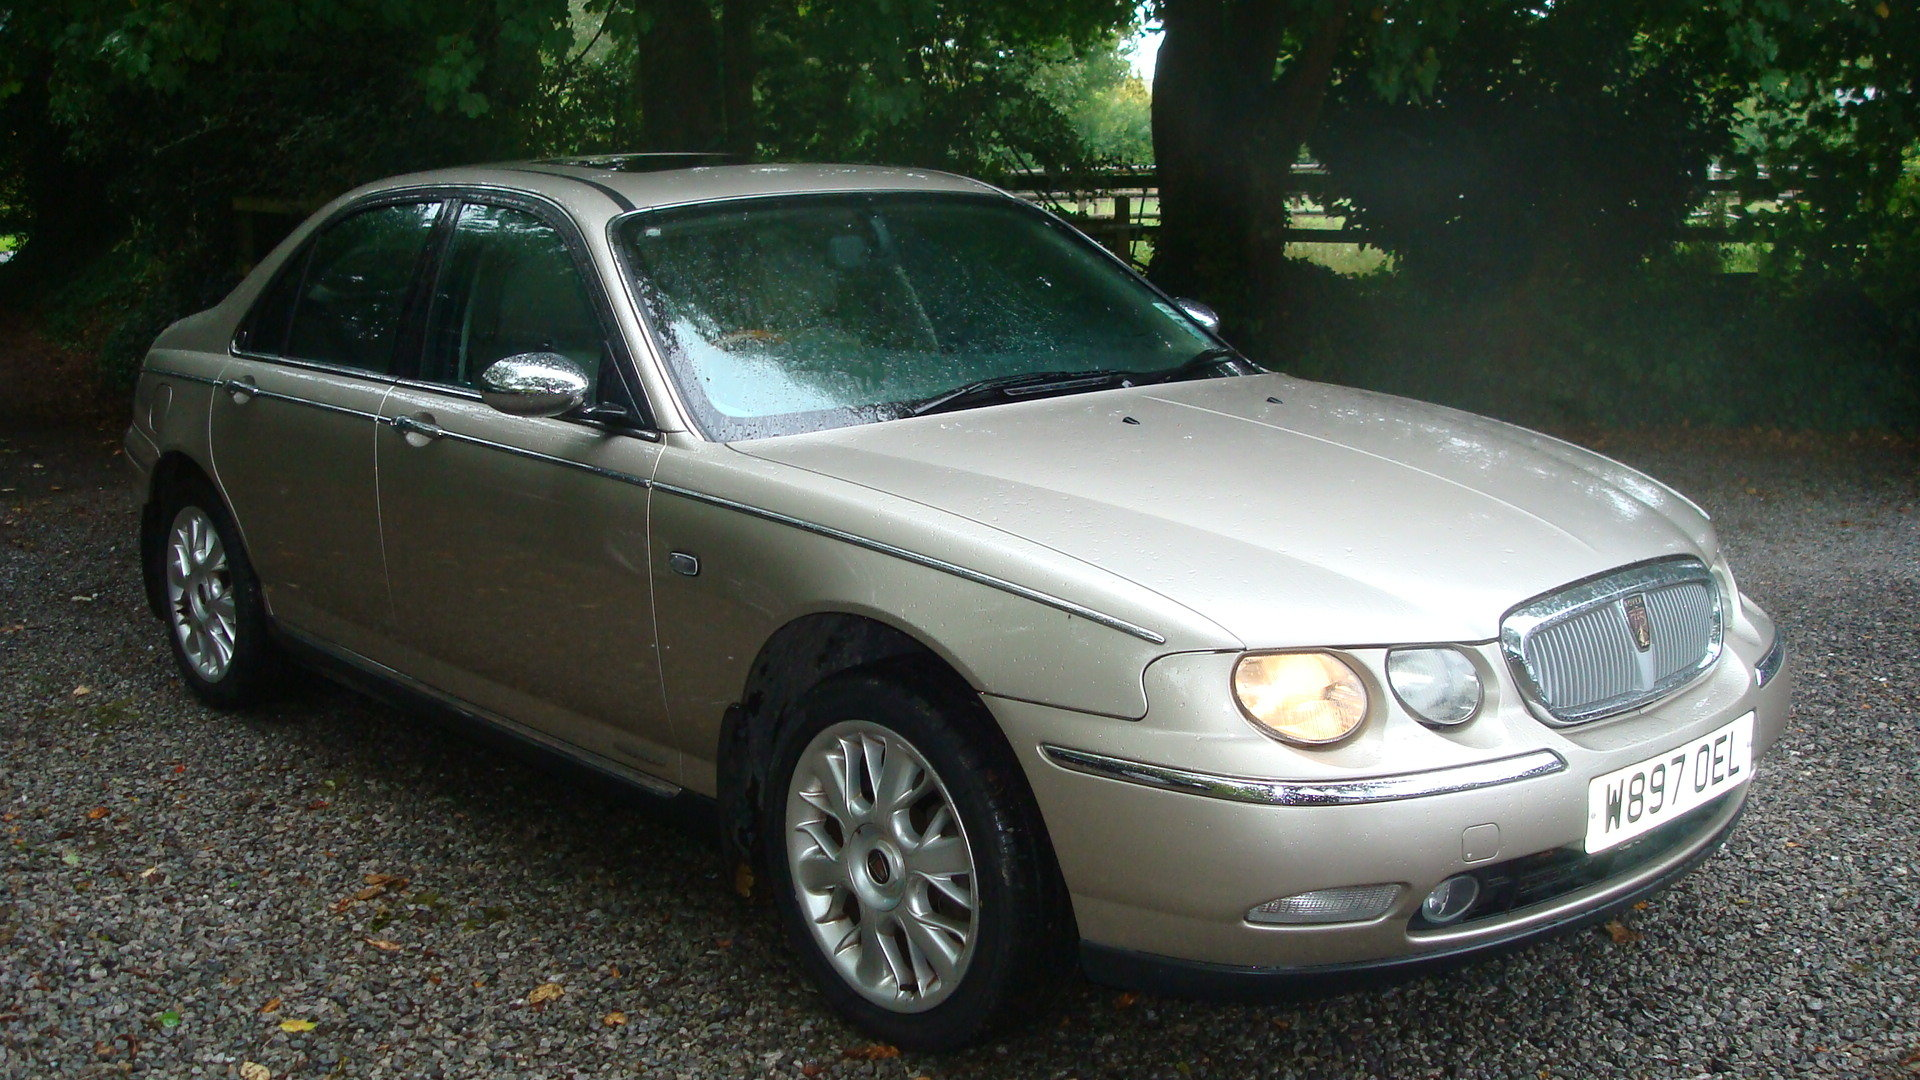 2000 Rover 75 2.5 V6 Connoisseur SE For Sale (picture 2 of 6)